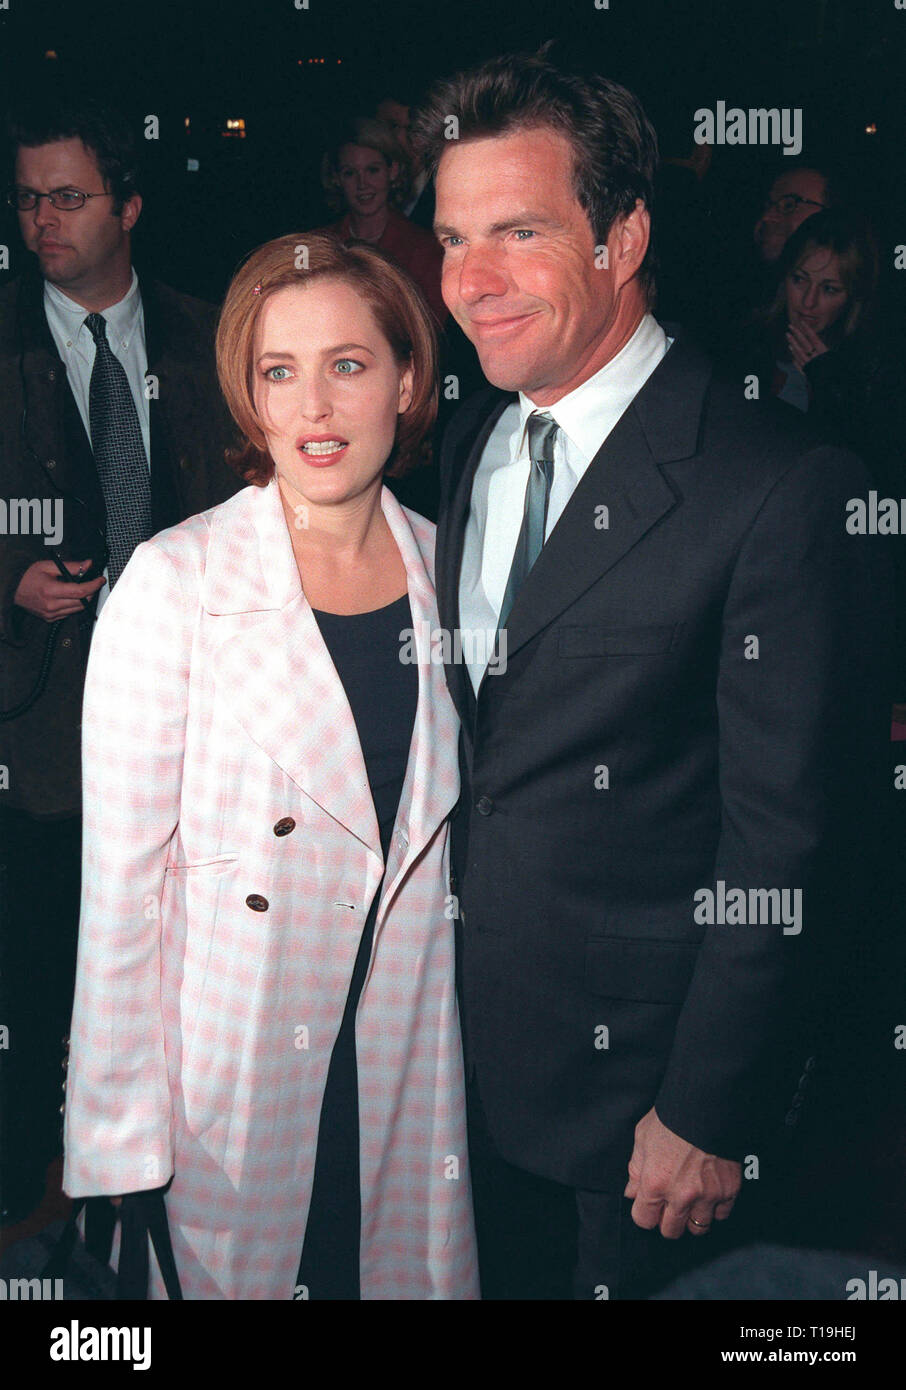 LOS ANGELES, CA - December 10, 1998: 'X-Files' star GILLIAN ANDERSON & actor DENNIS QUAID at world premiere of their new movie 'Playing by Heart' in which they star with Sean Connery.  © Paul Smith / Featureflash - Stock Image